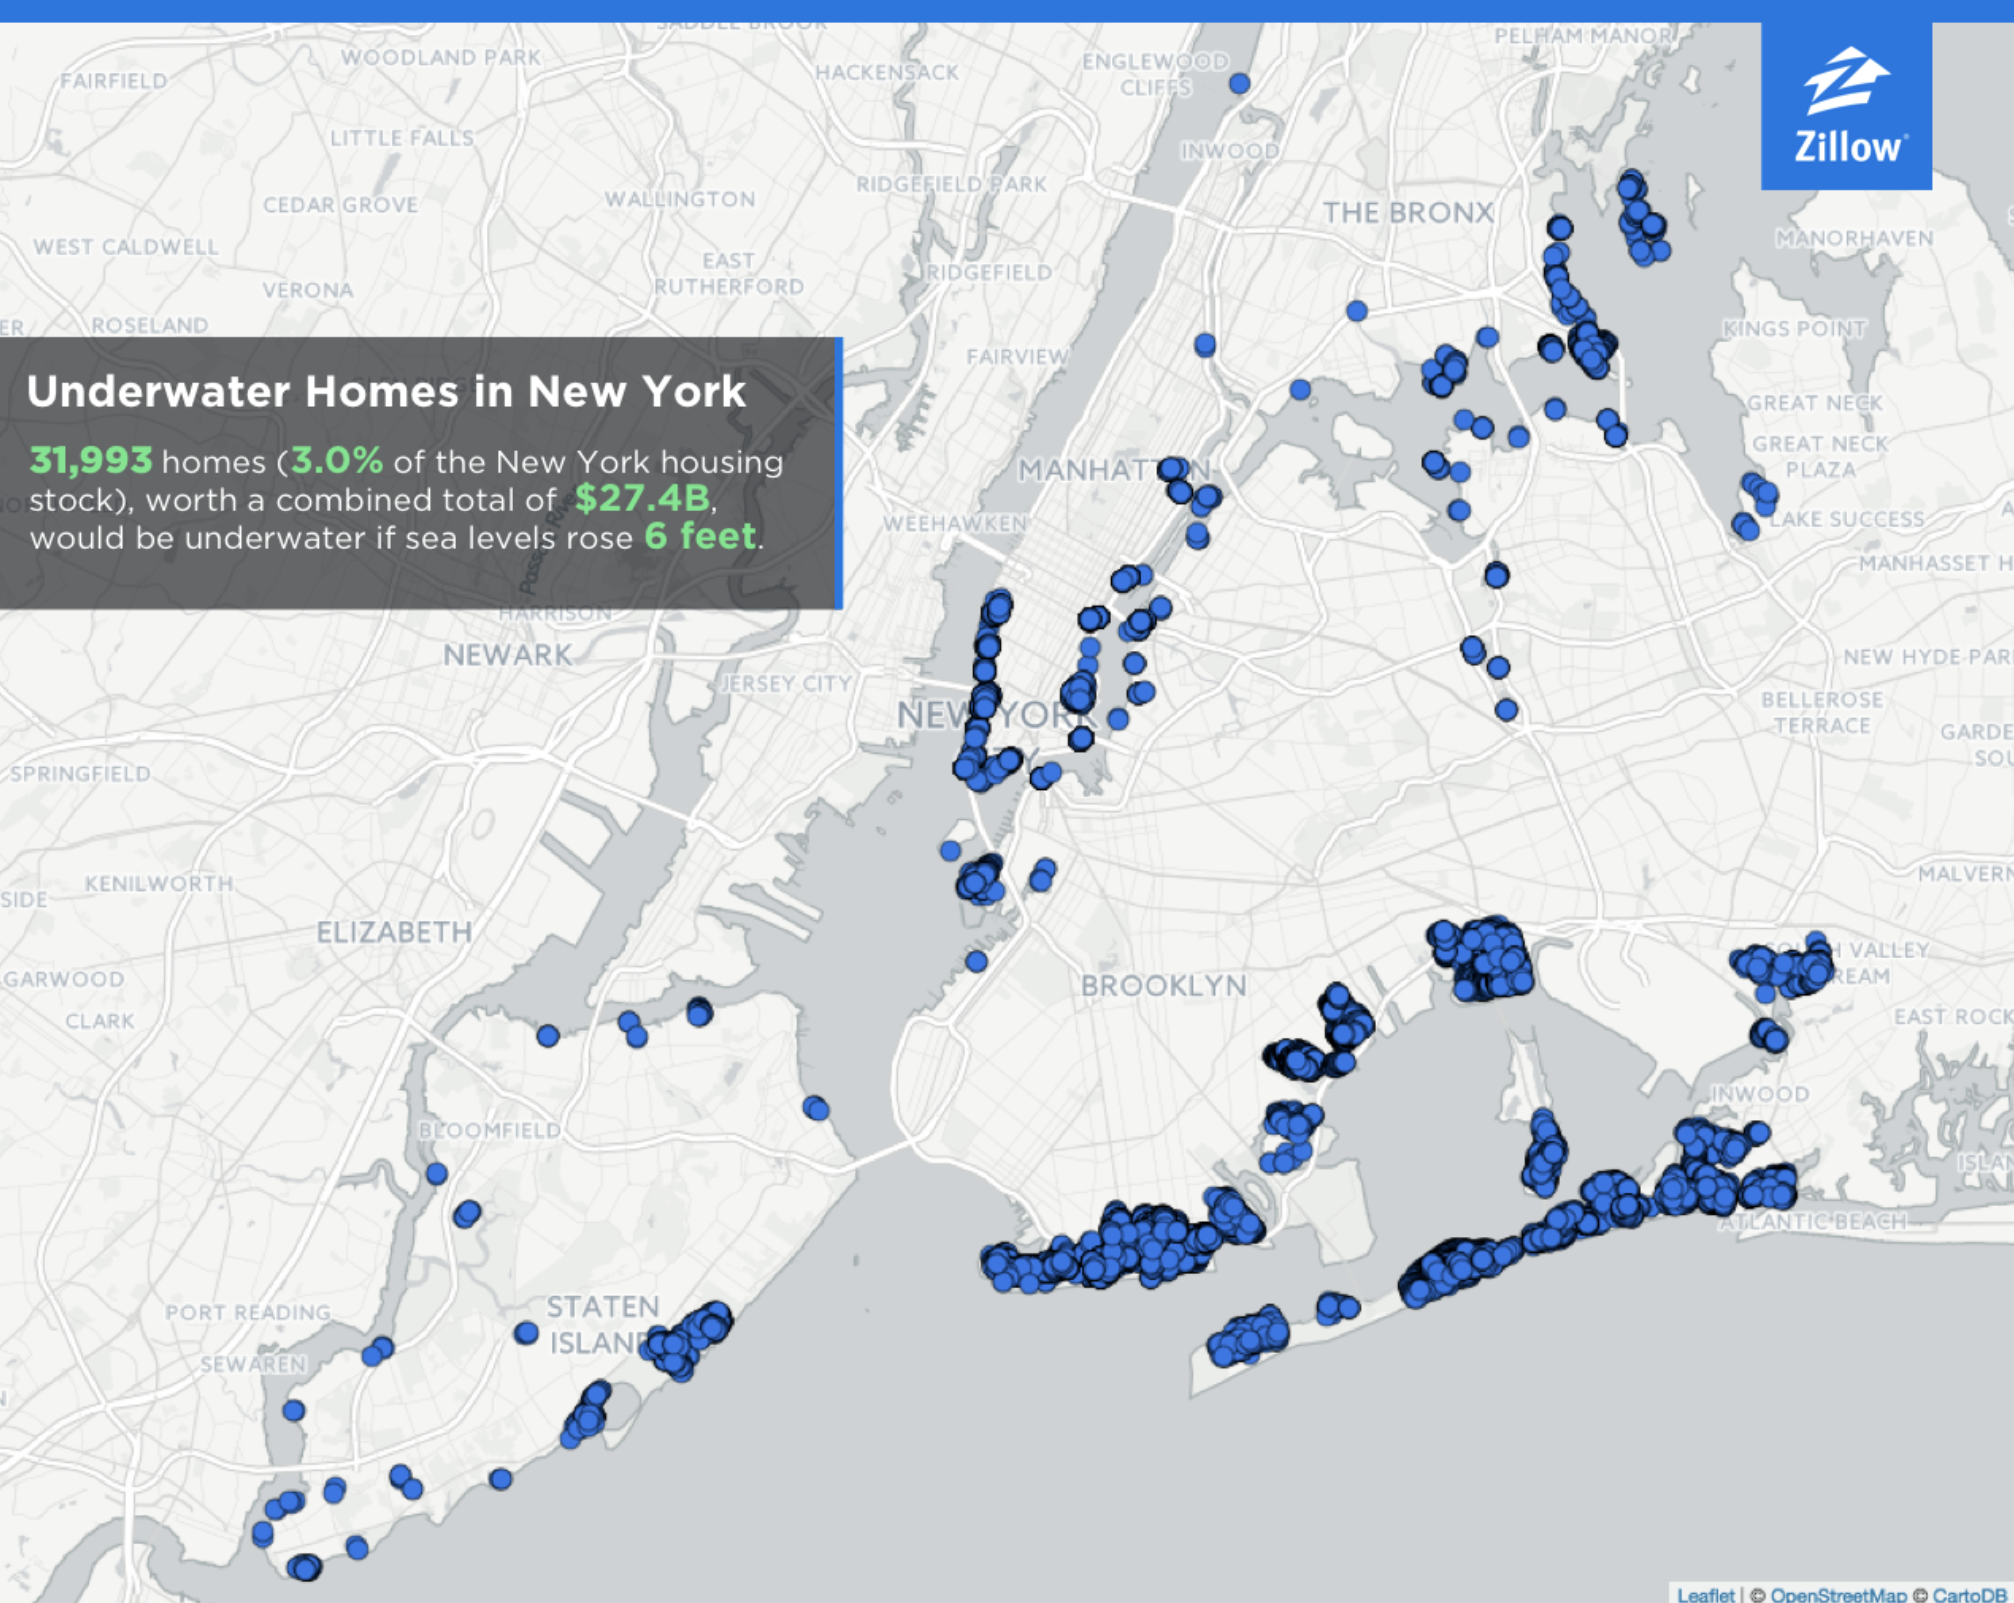 Zillow NYC